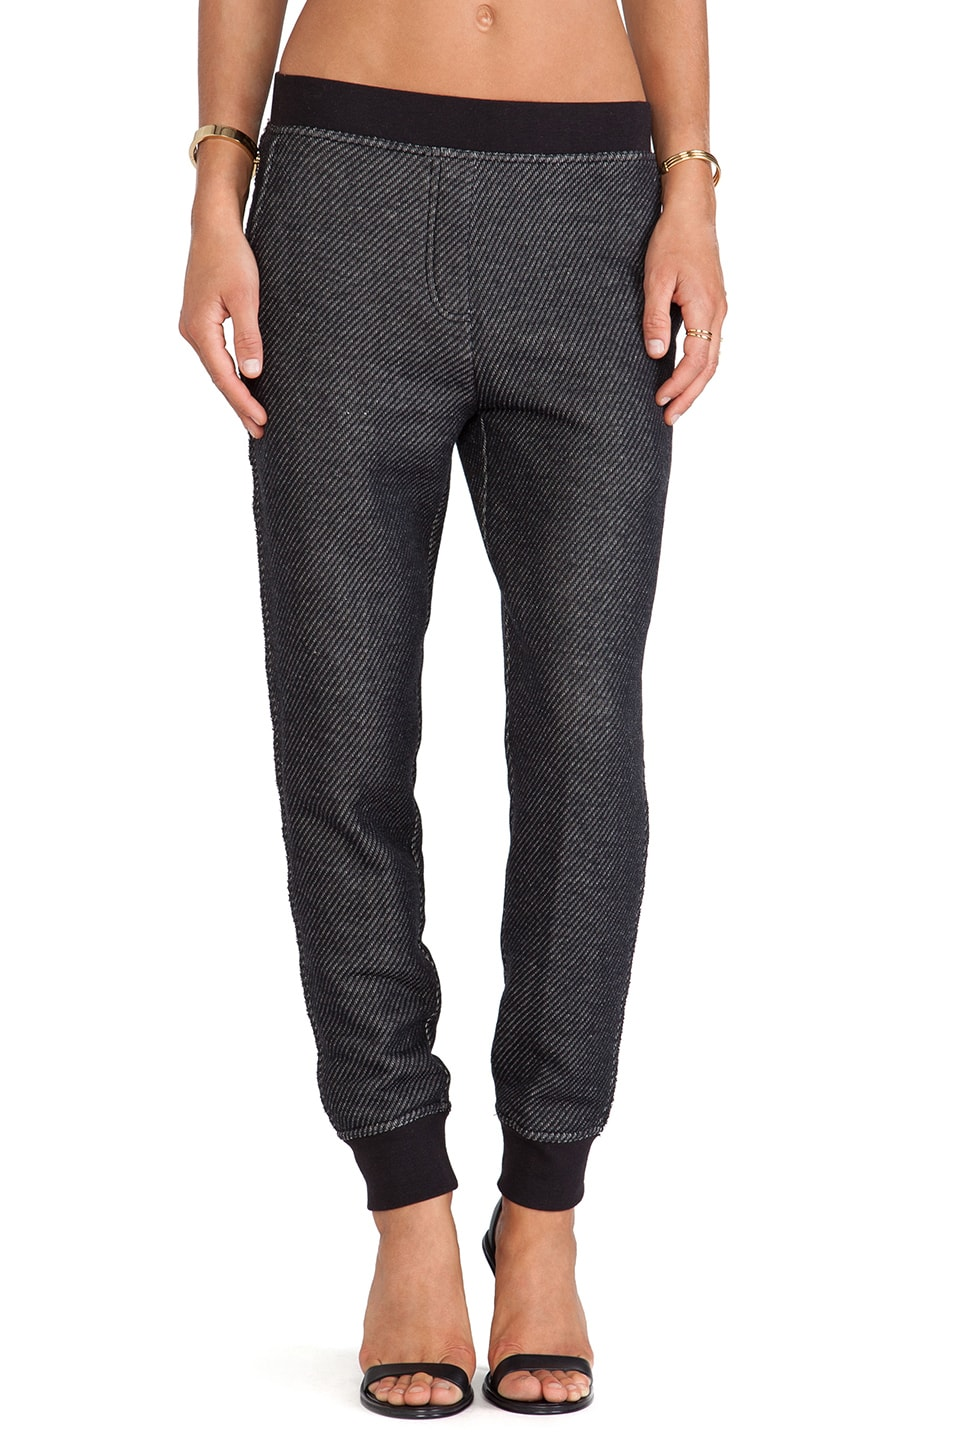 T by Alexander Wang Sweatpant in Black/Bone